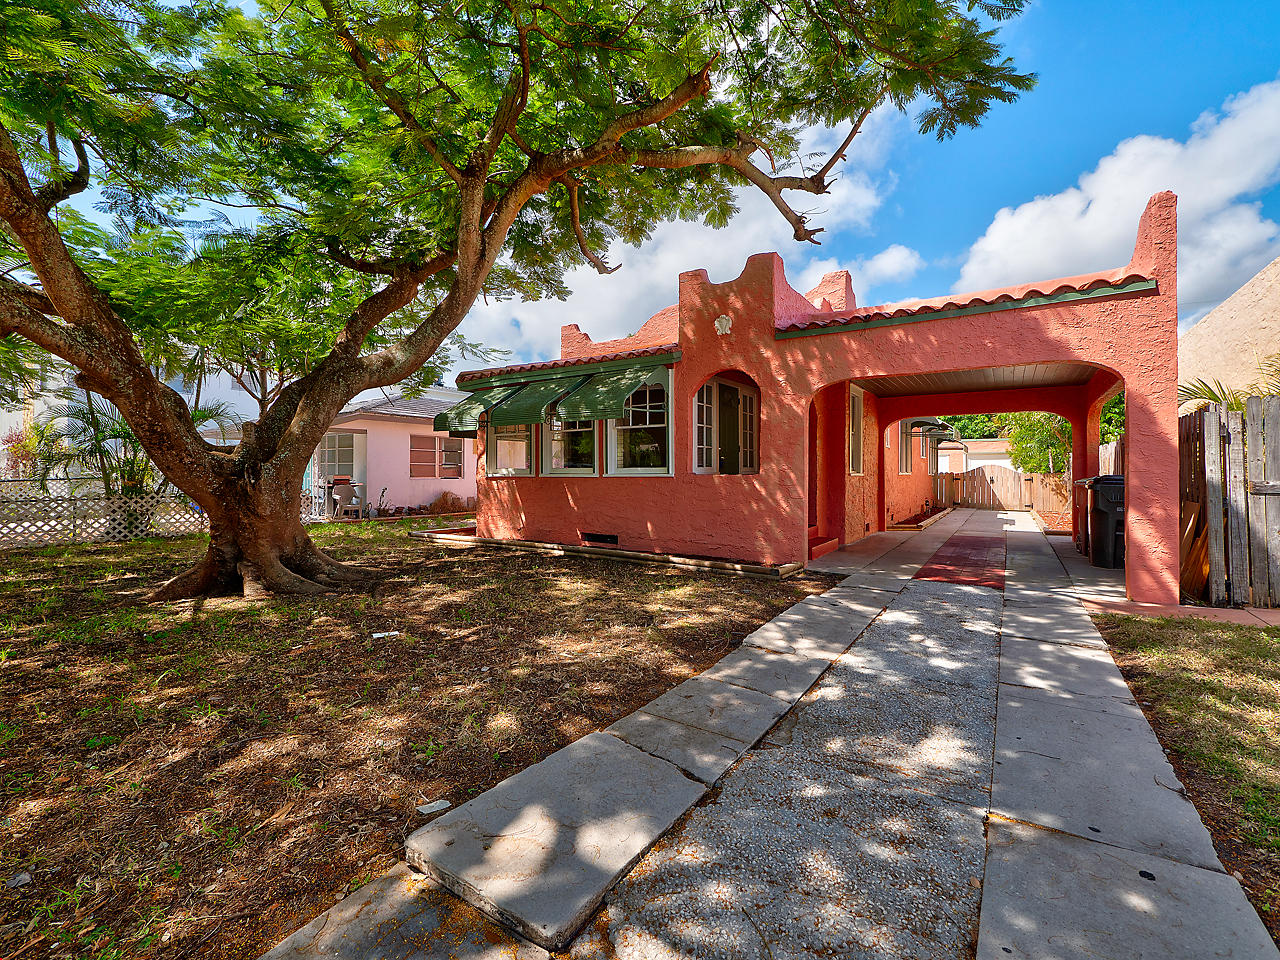 Home for sale in Downtown Jewell Lake Worth Florida